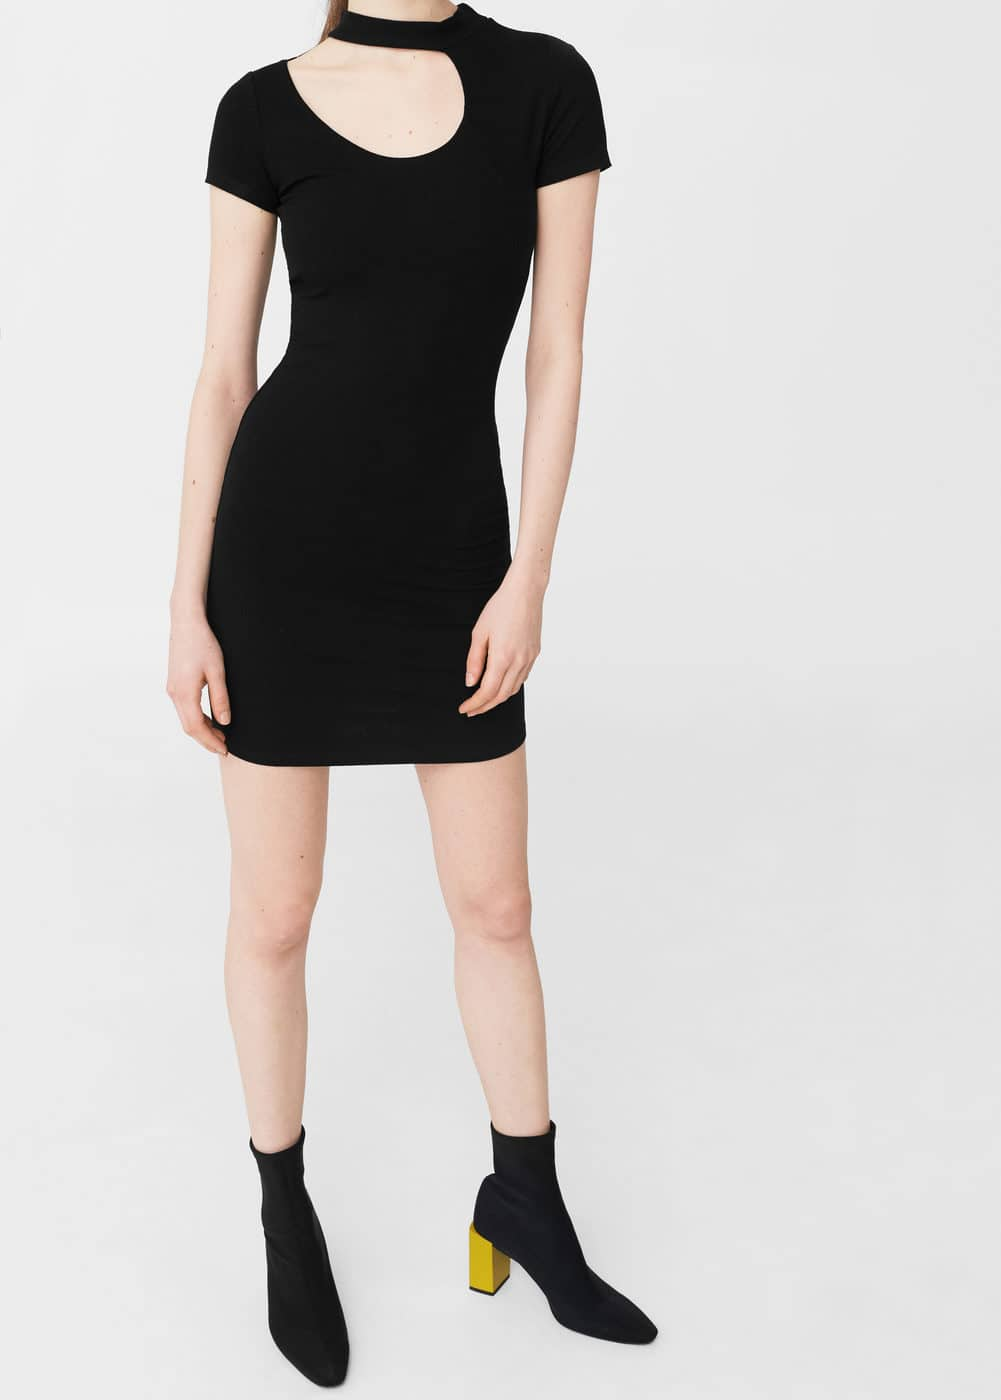 Figurbetontes kleid mit cut-out | MANGO